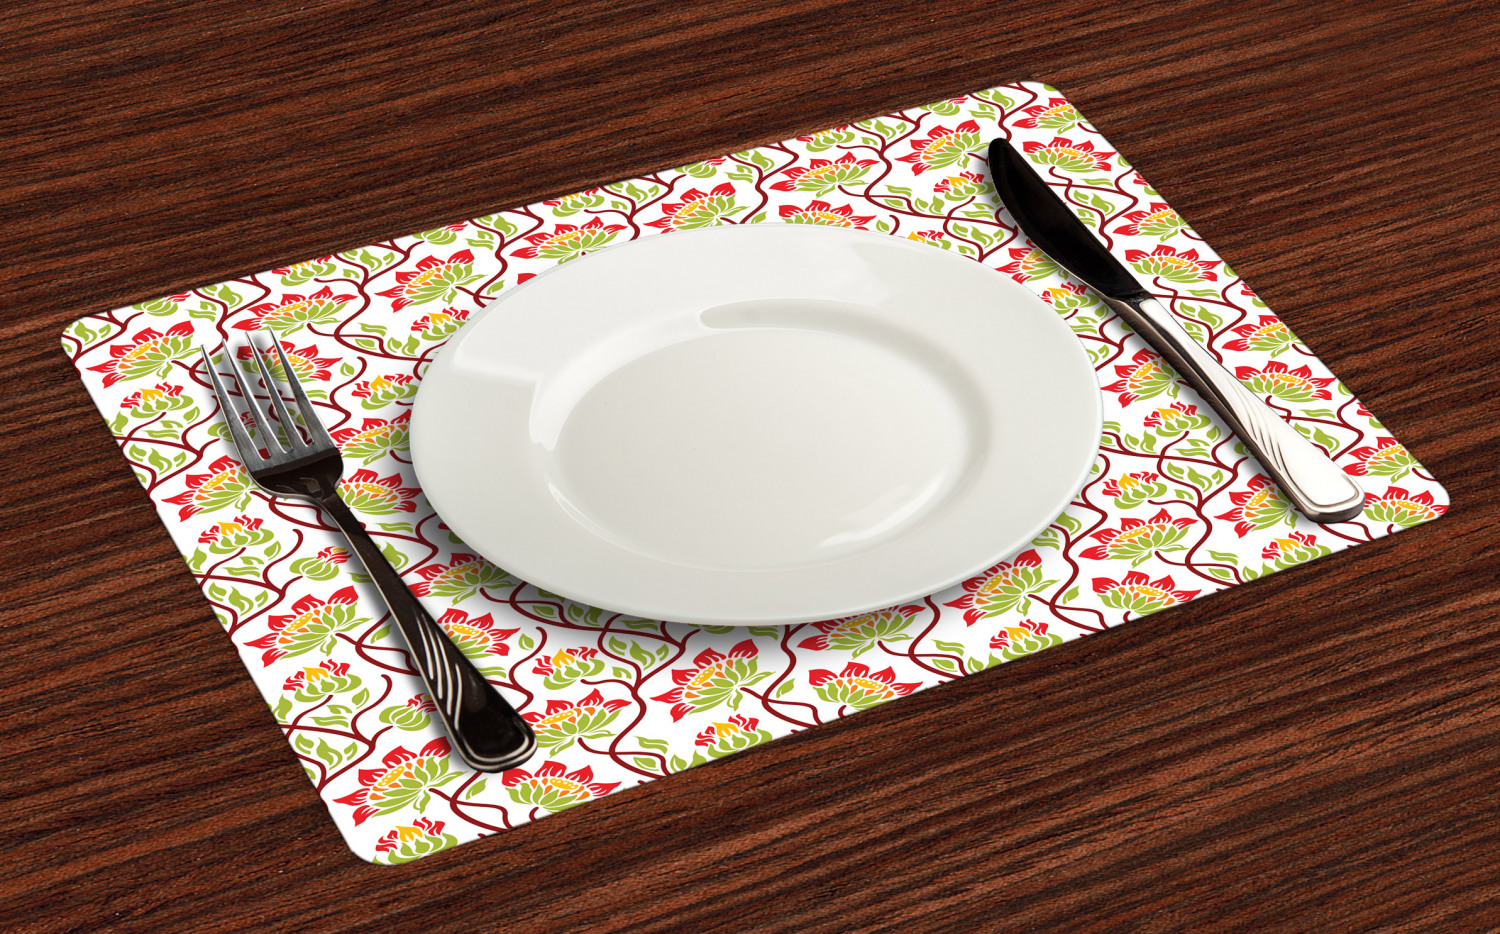 Ambesonne-Flower-Pattern-Placemat-Set-of-4-Fabric-Place-Mats-for-Table-Decor thumbnail 13